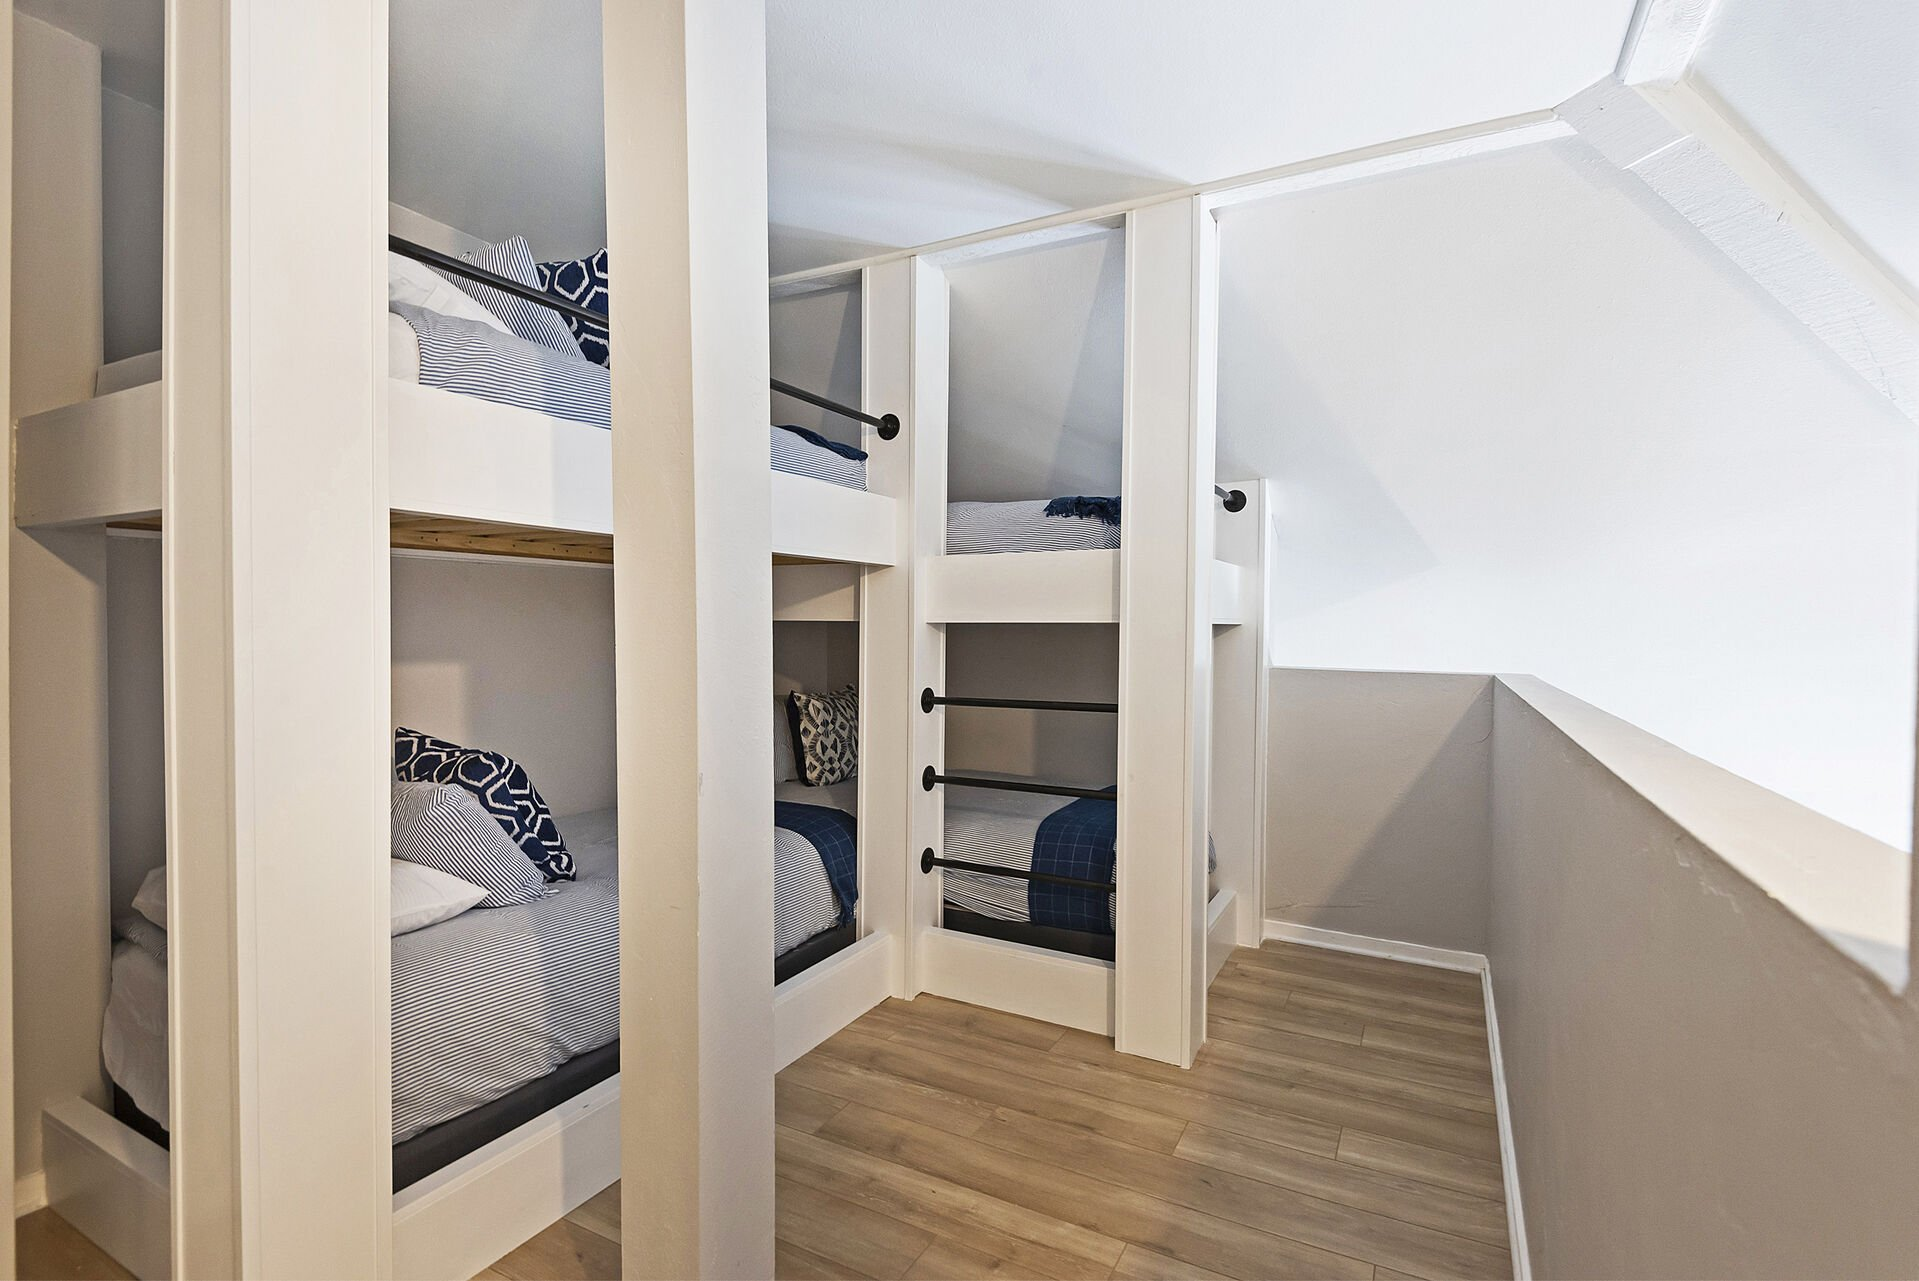 Loft Bunk Room with Access to the Full Shared Bath on the Main Level